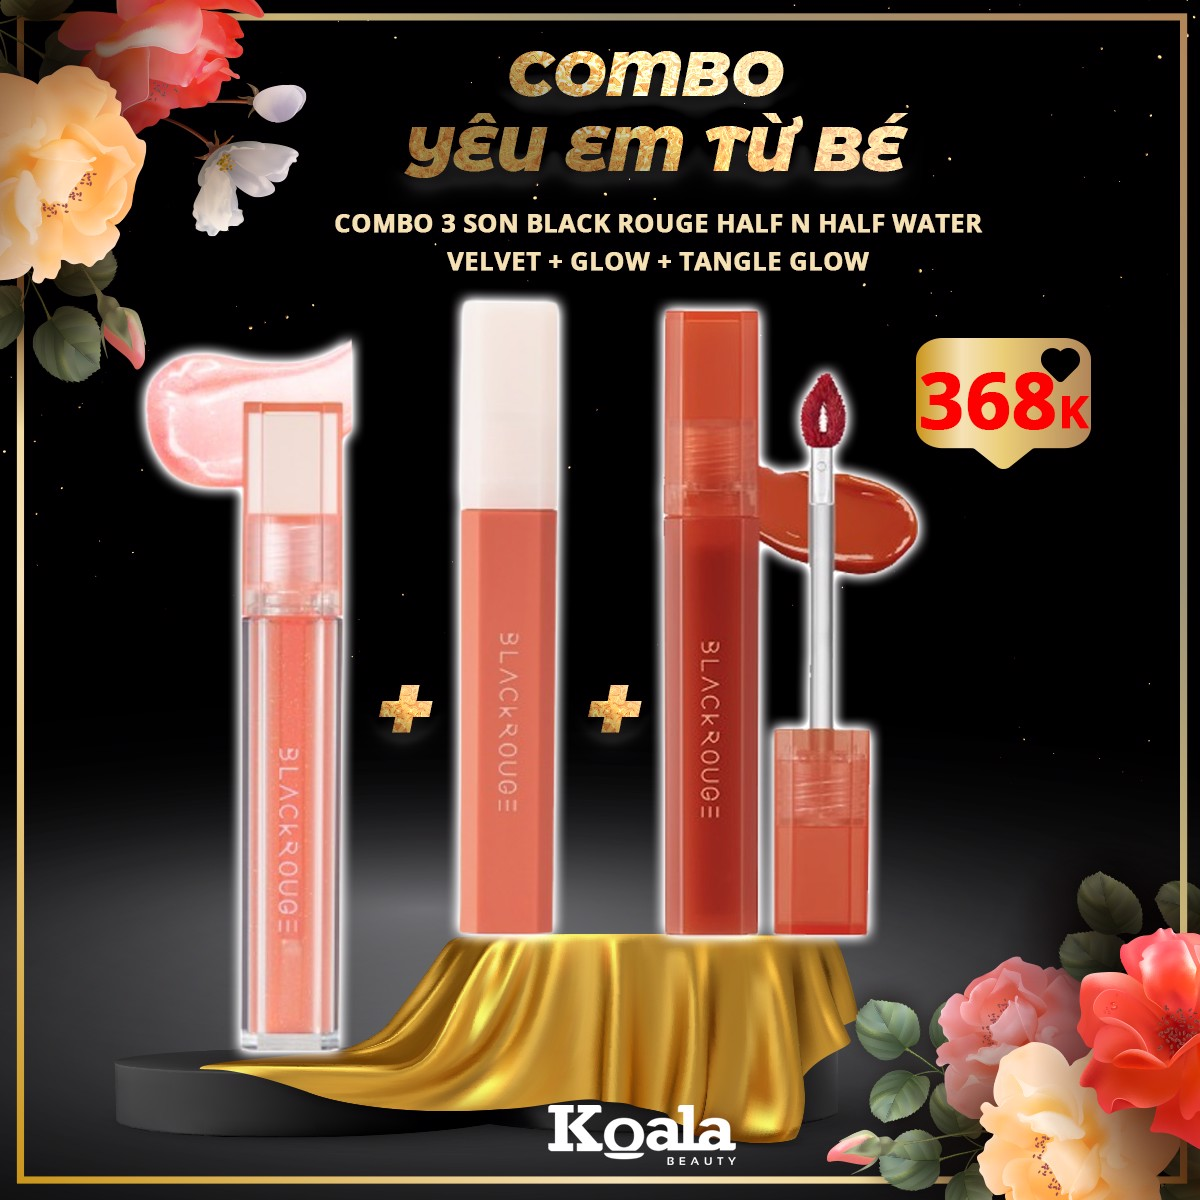 8/3 Combo YÊU EM TỪ BÉ - 3 Son Black Rouge Half N Half Water (Velvet + Glow + Tangle Glow)